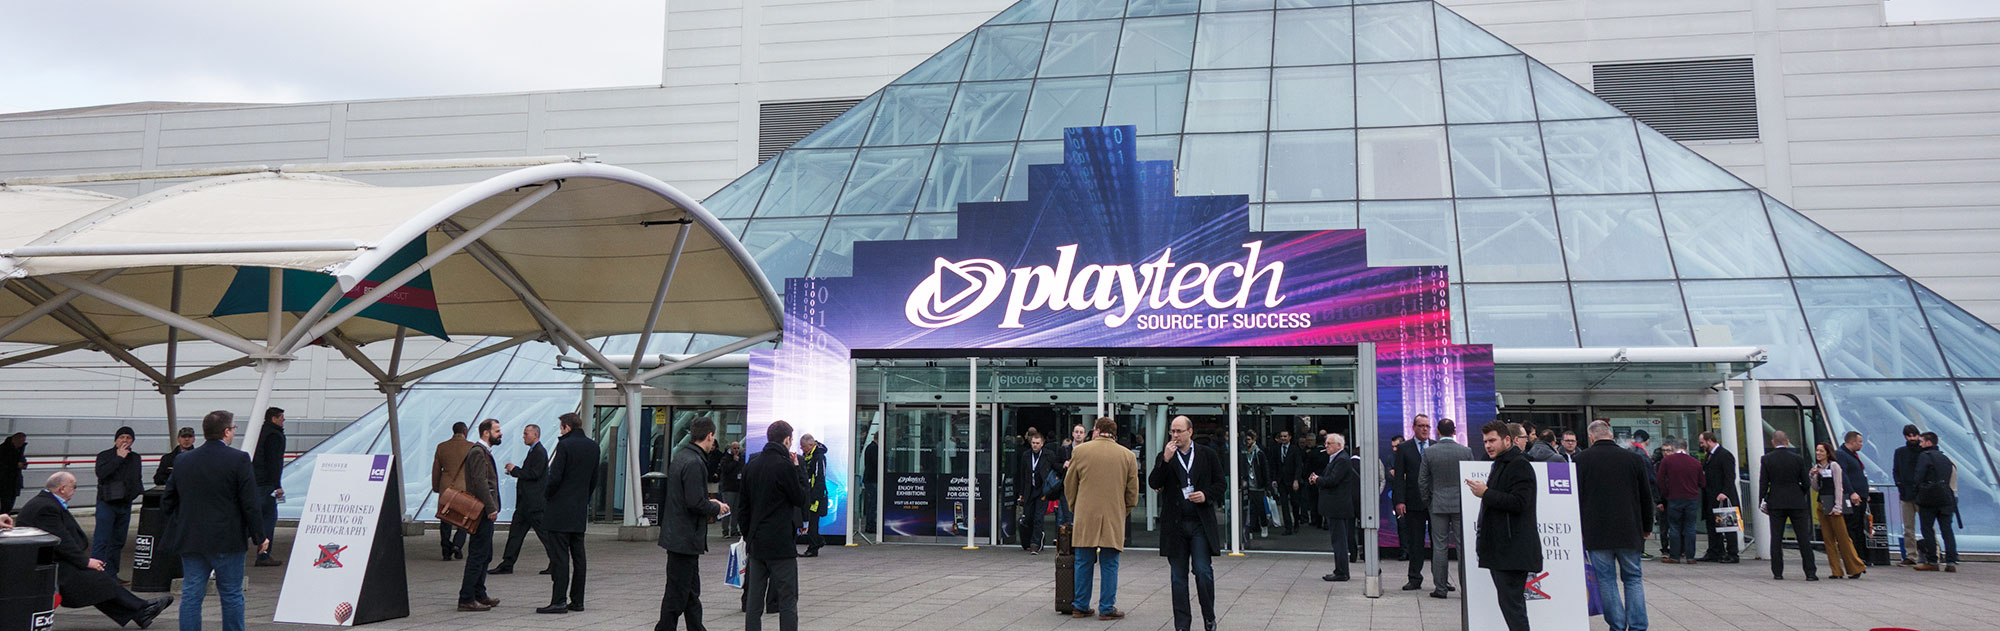 YSLV's Digital Entrance at Excel London for the ICE Totally Gaming Show